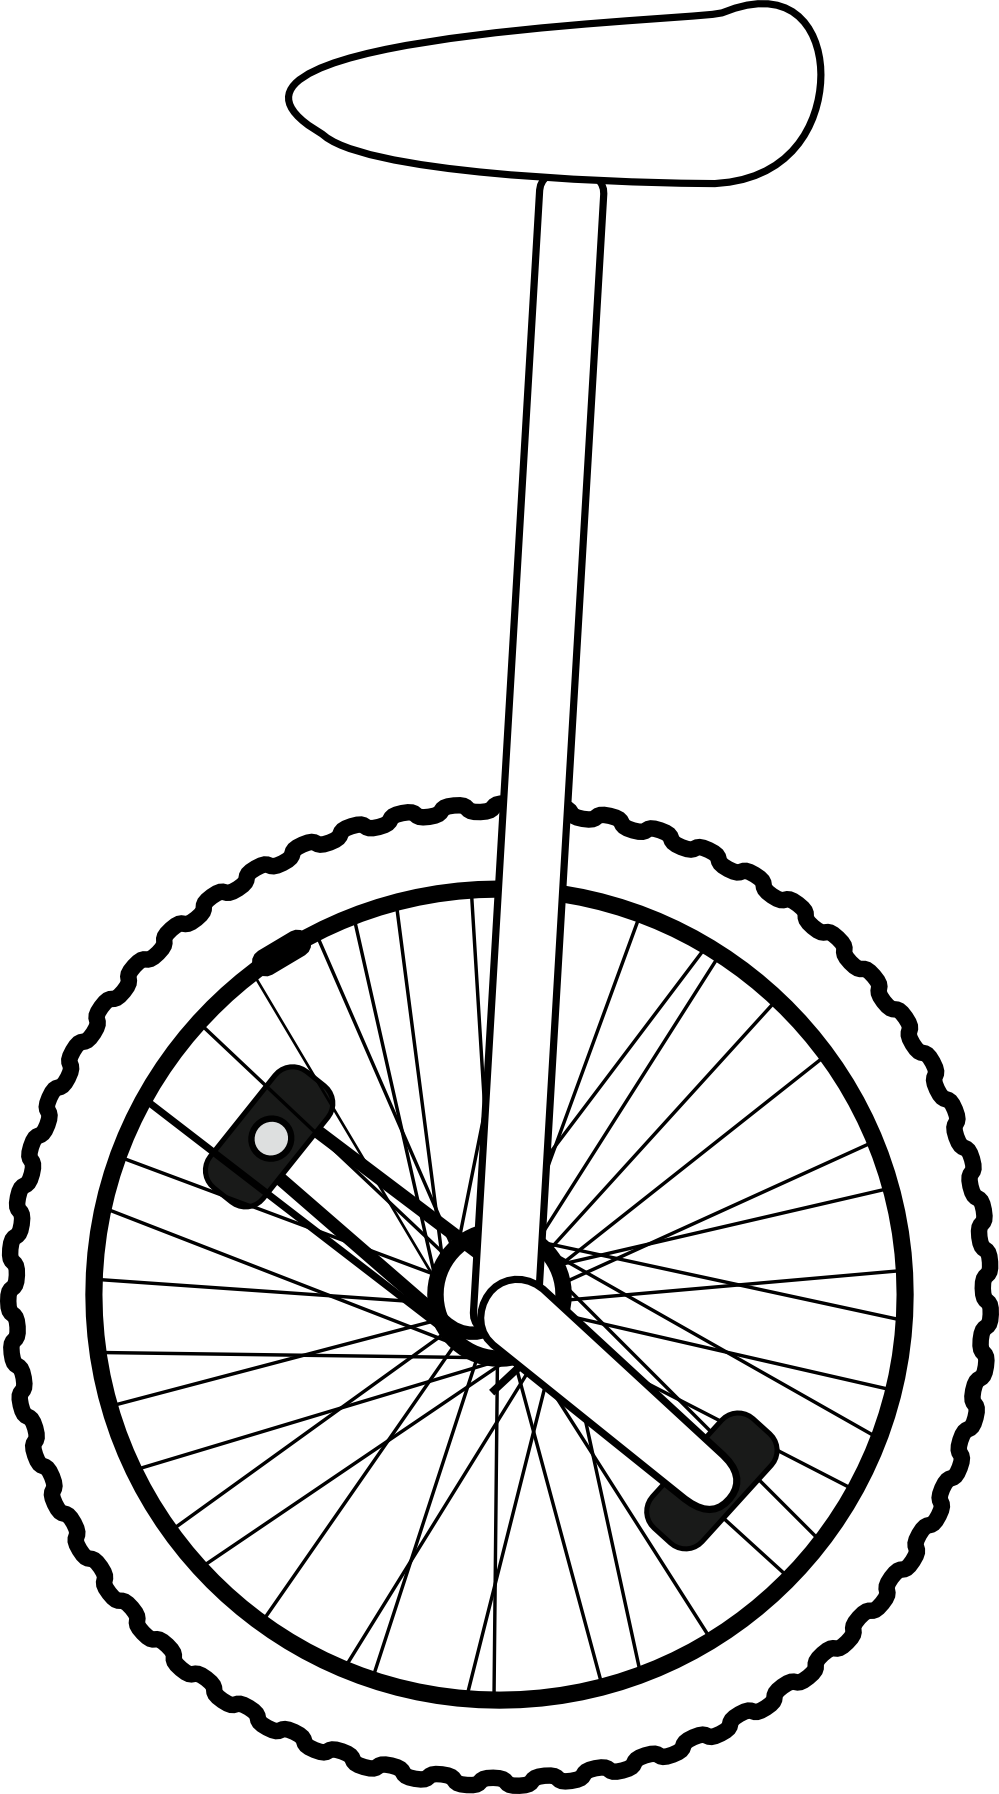 Unicycle panda free images. Wheel clipart drawing